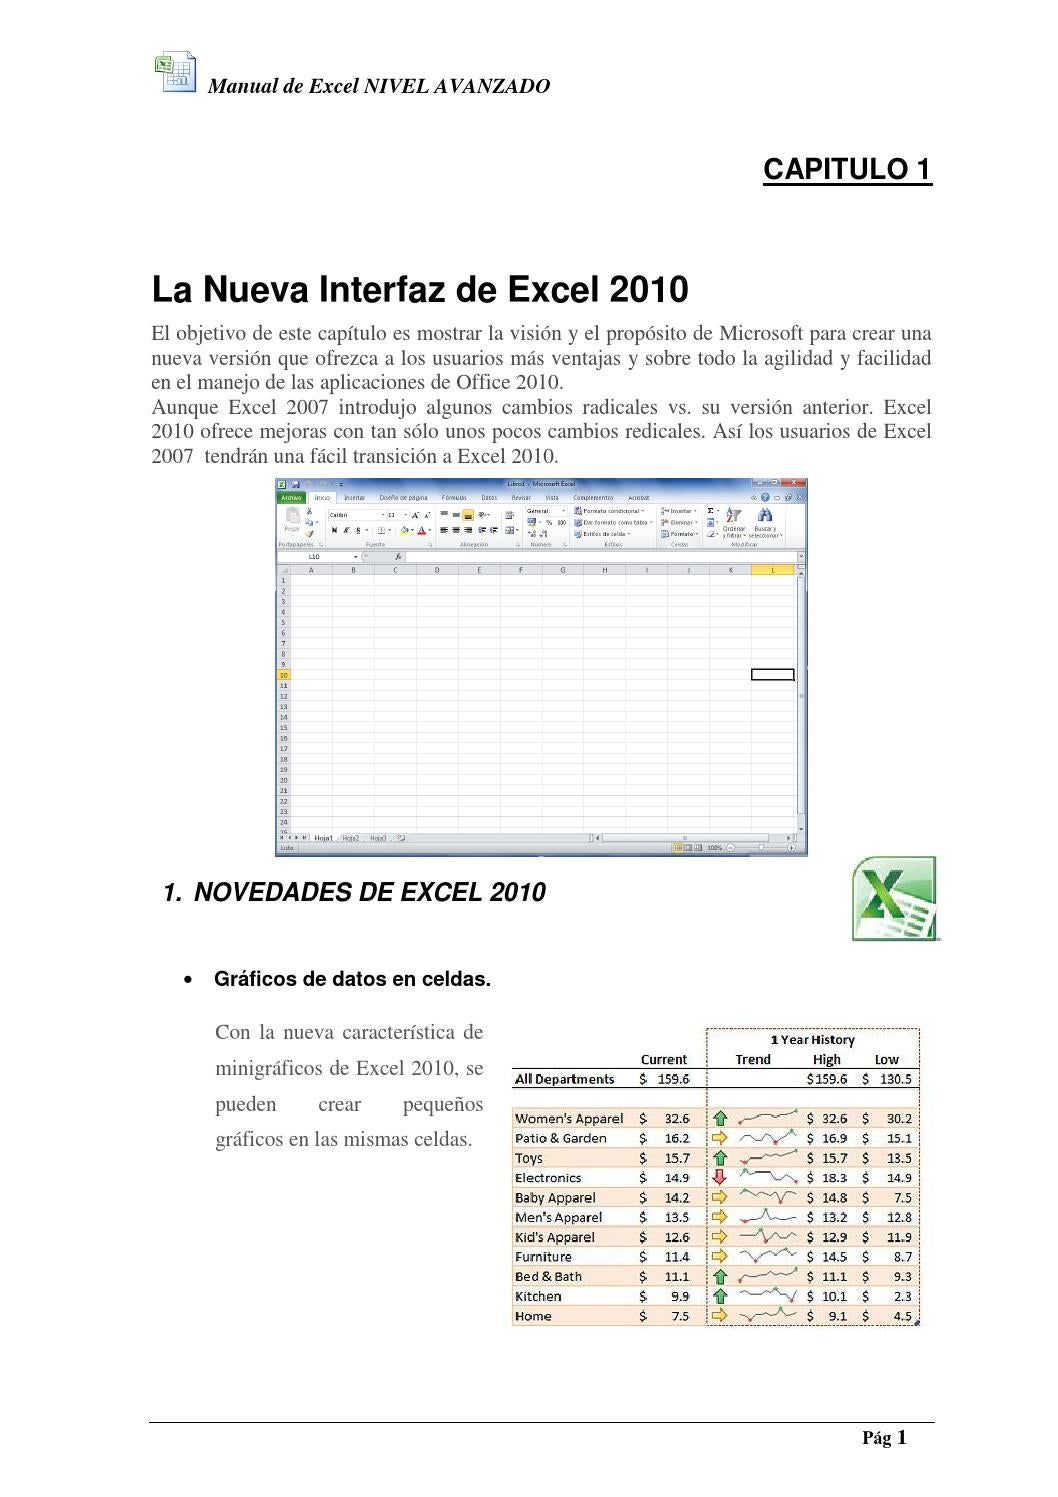 Raiz Cuadrada En Excel 2010 Manual Excel Nivel Avanzado By Jose Estrada Issuu